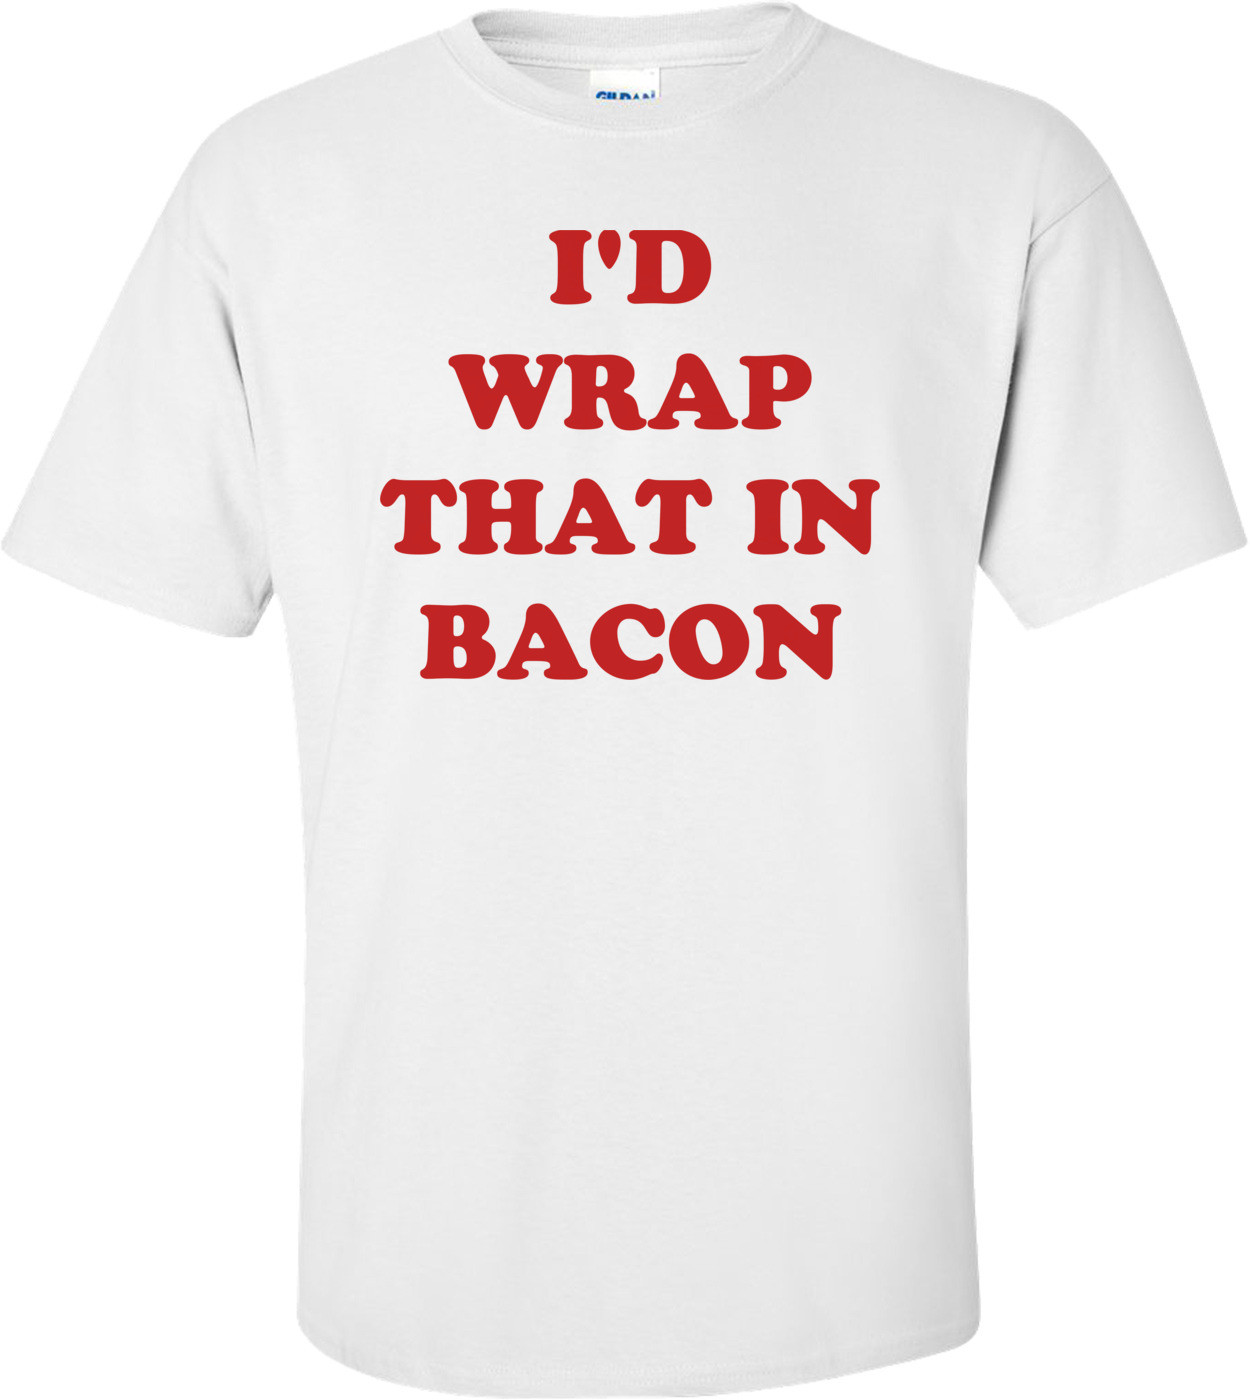 I'D WRAP THAT IN BACON Shirt